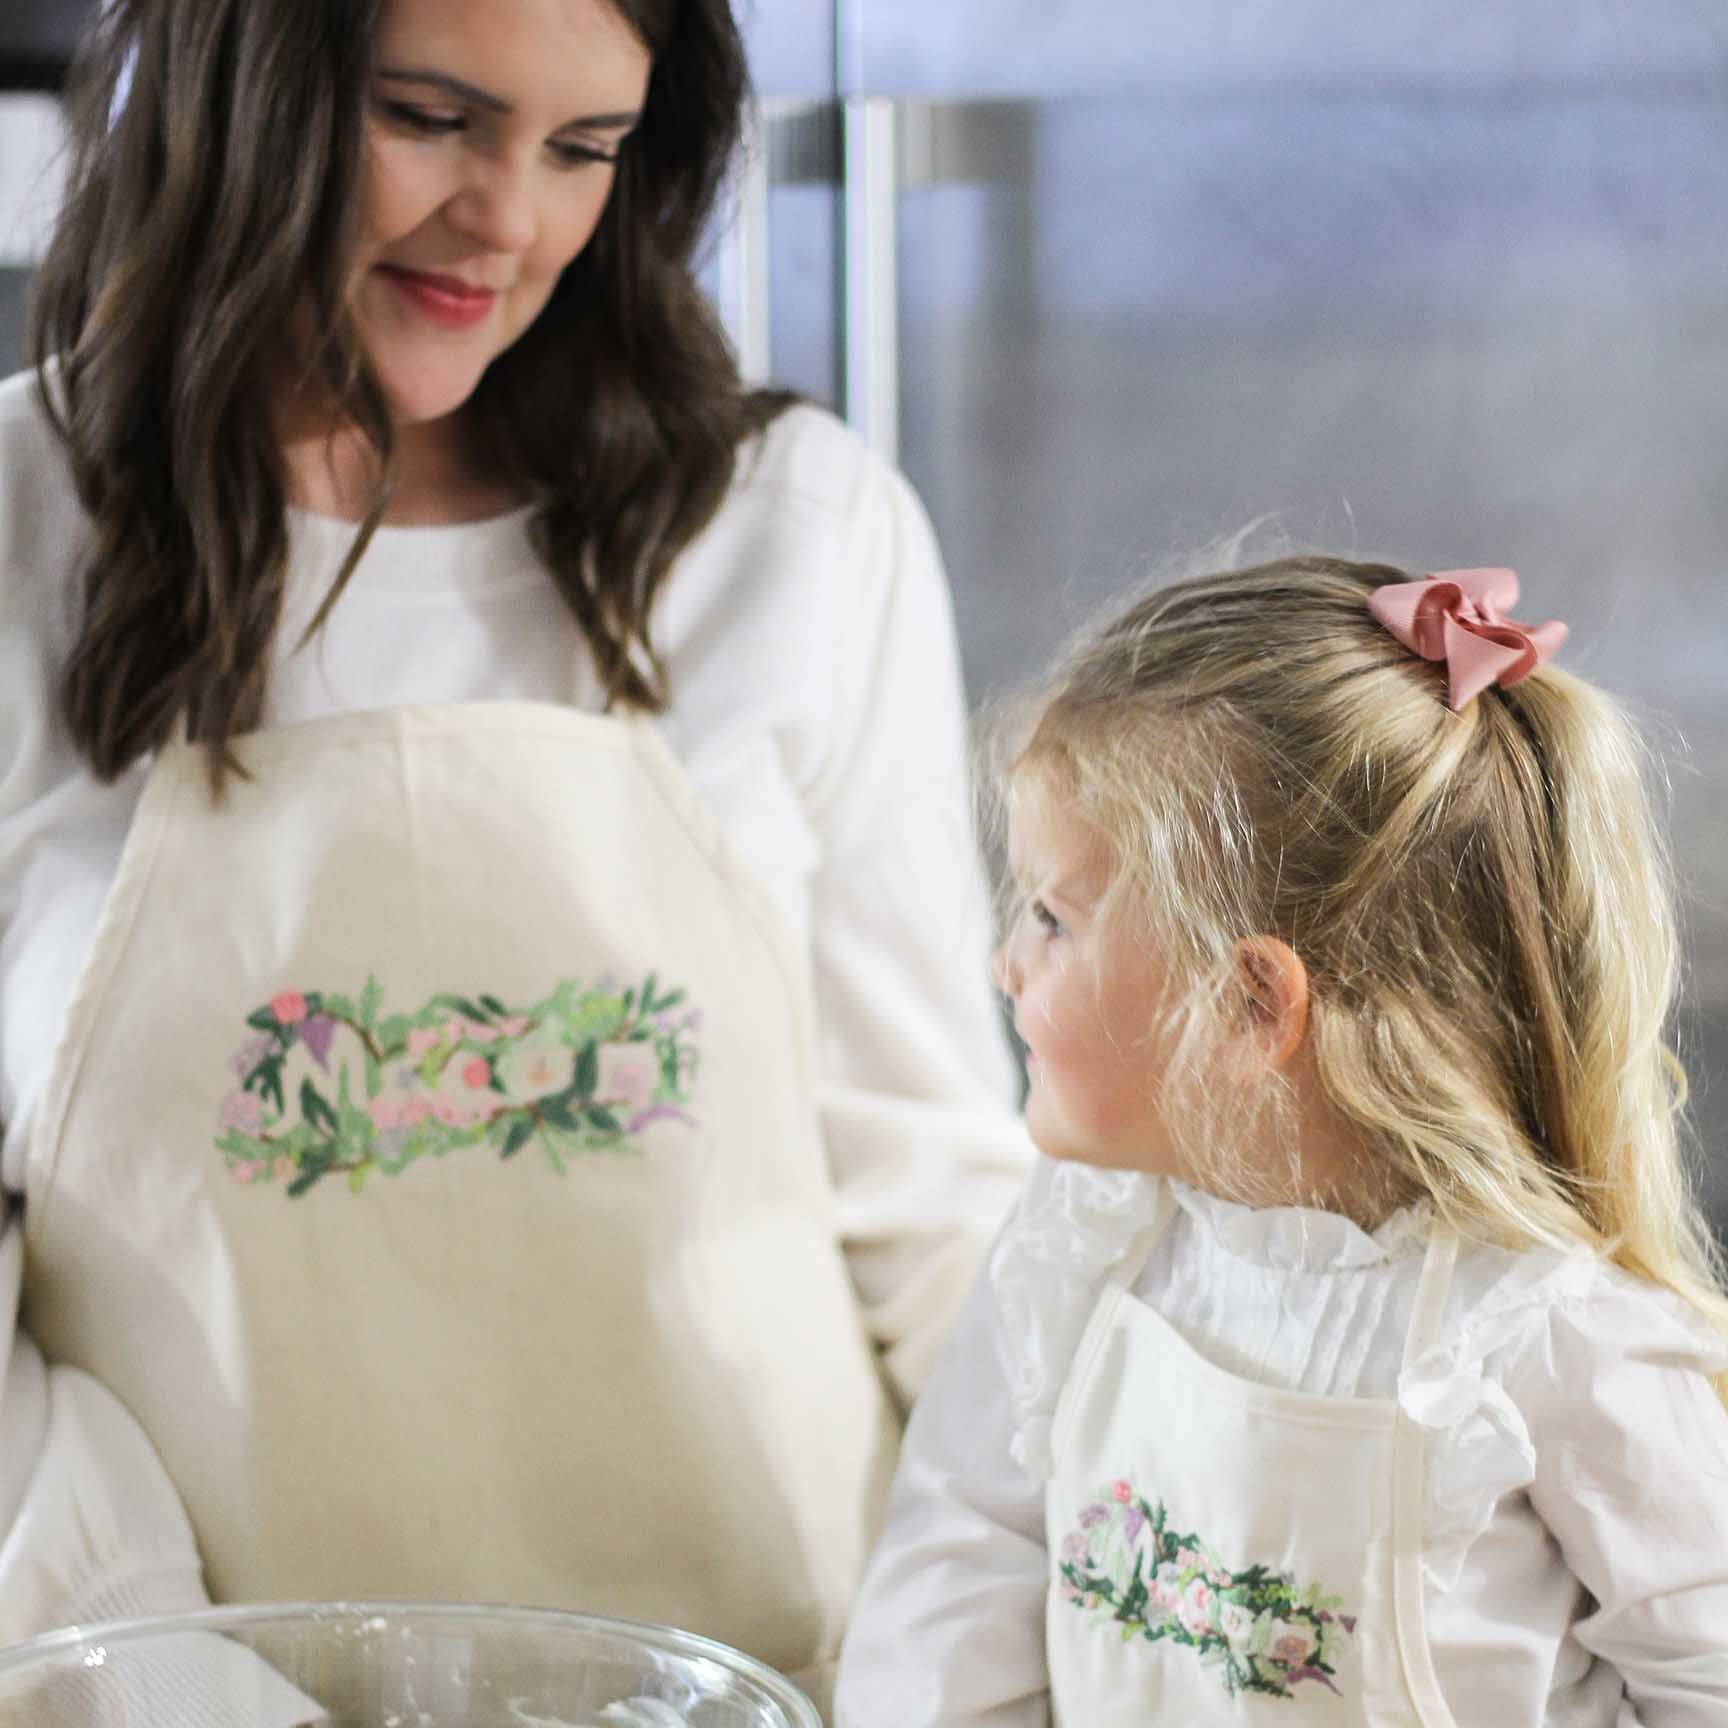 image of mother and daughter wearing matching aprons while baking, embroidered with 'Macon Floral Design'